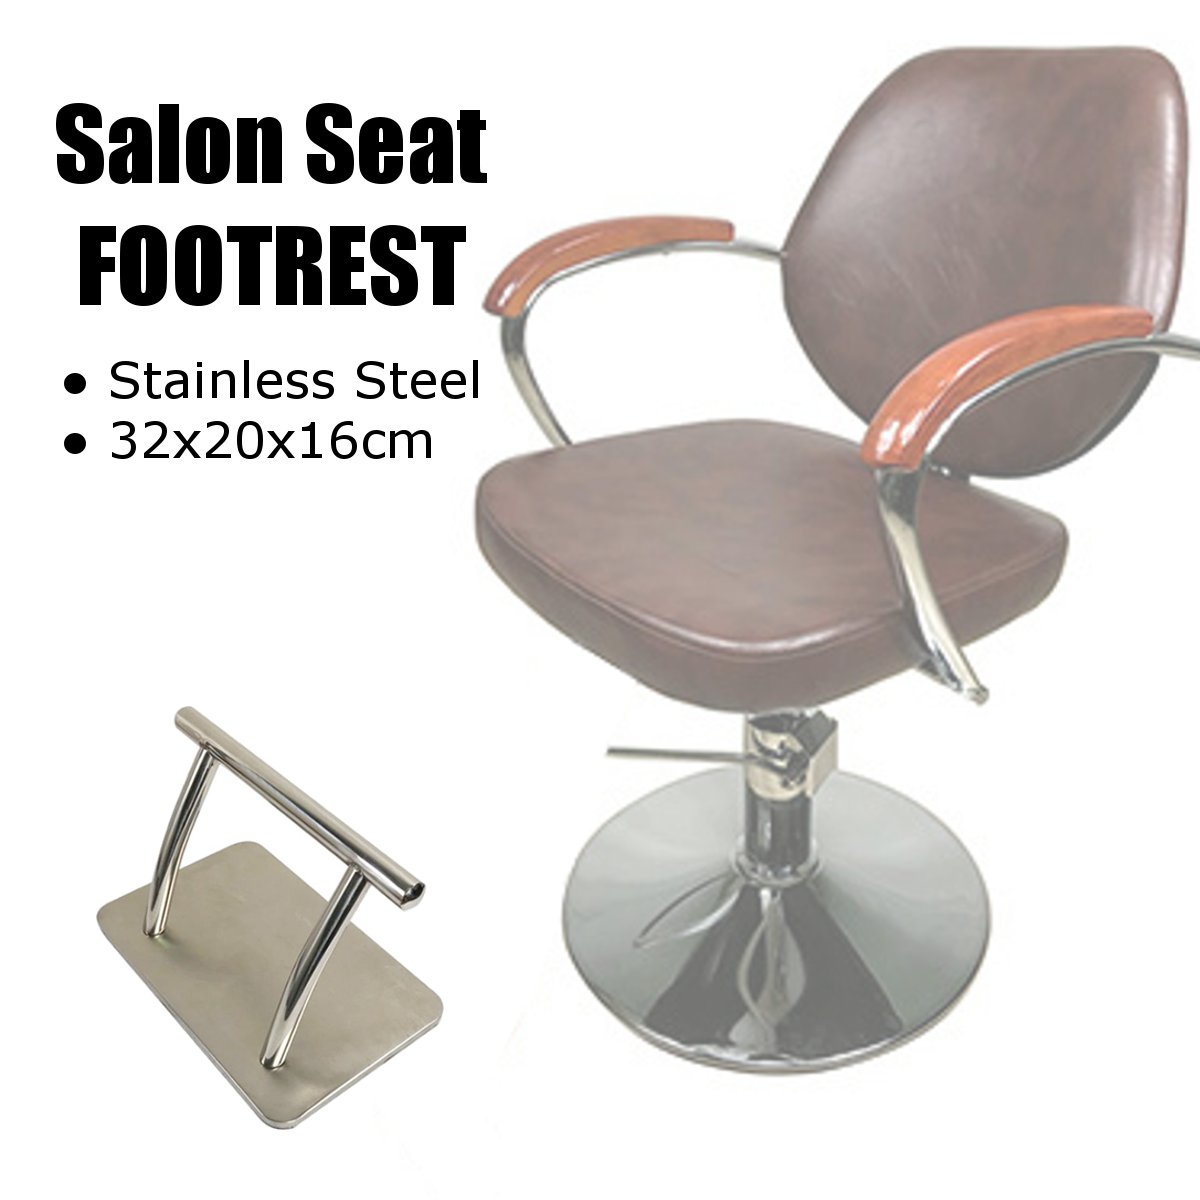 Hot Barber Chair Stainless Steel Footrest Salon Tattoo Hairdressing Seat Floor Stand Foot Rest Furniture Parts Accessories Non-S